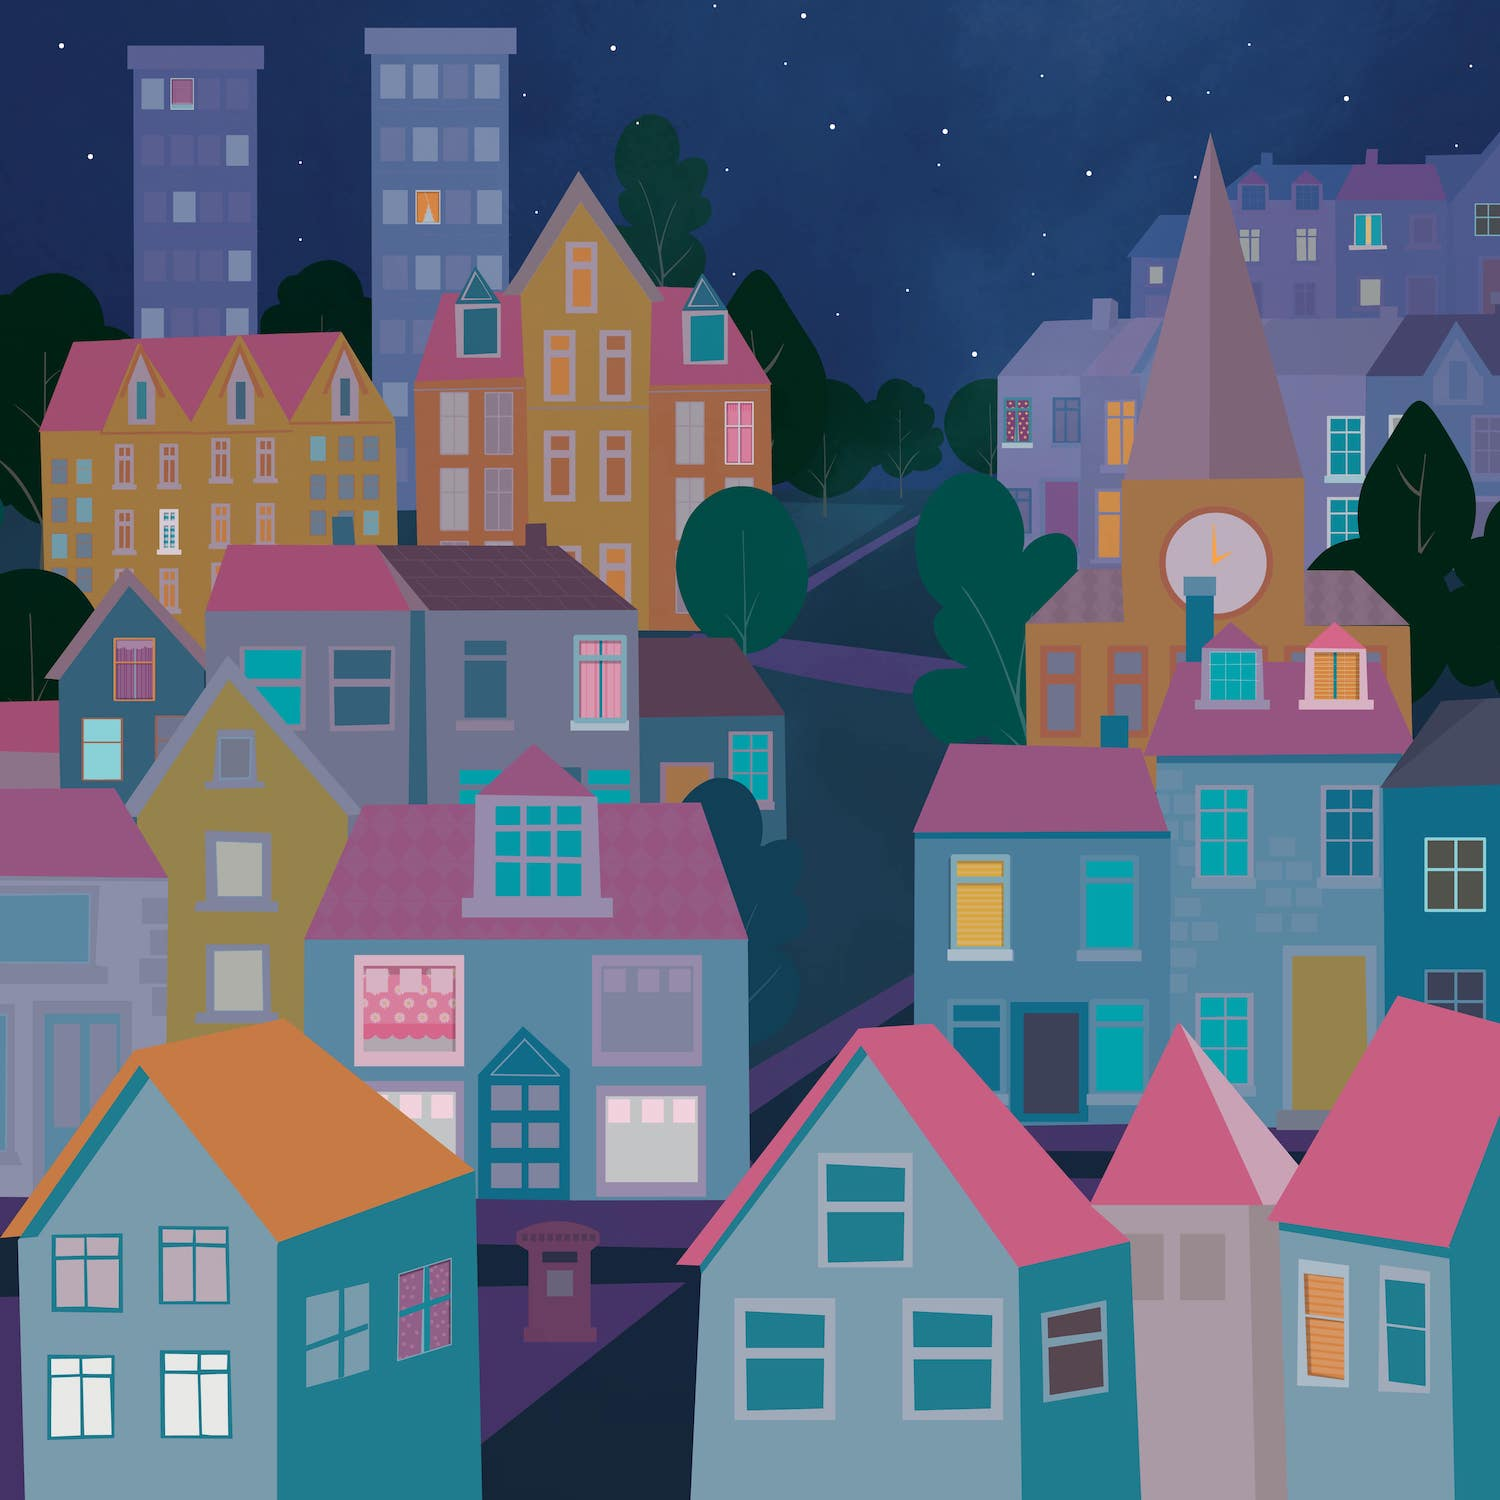 Cityscape night illustration - Luella Jane